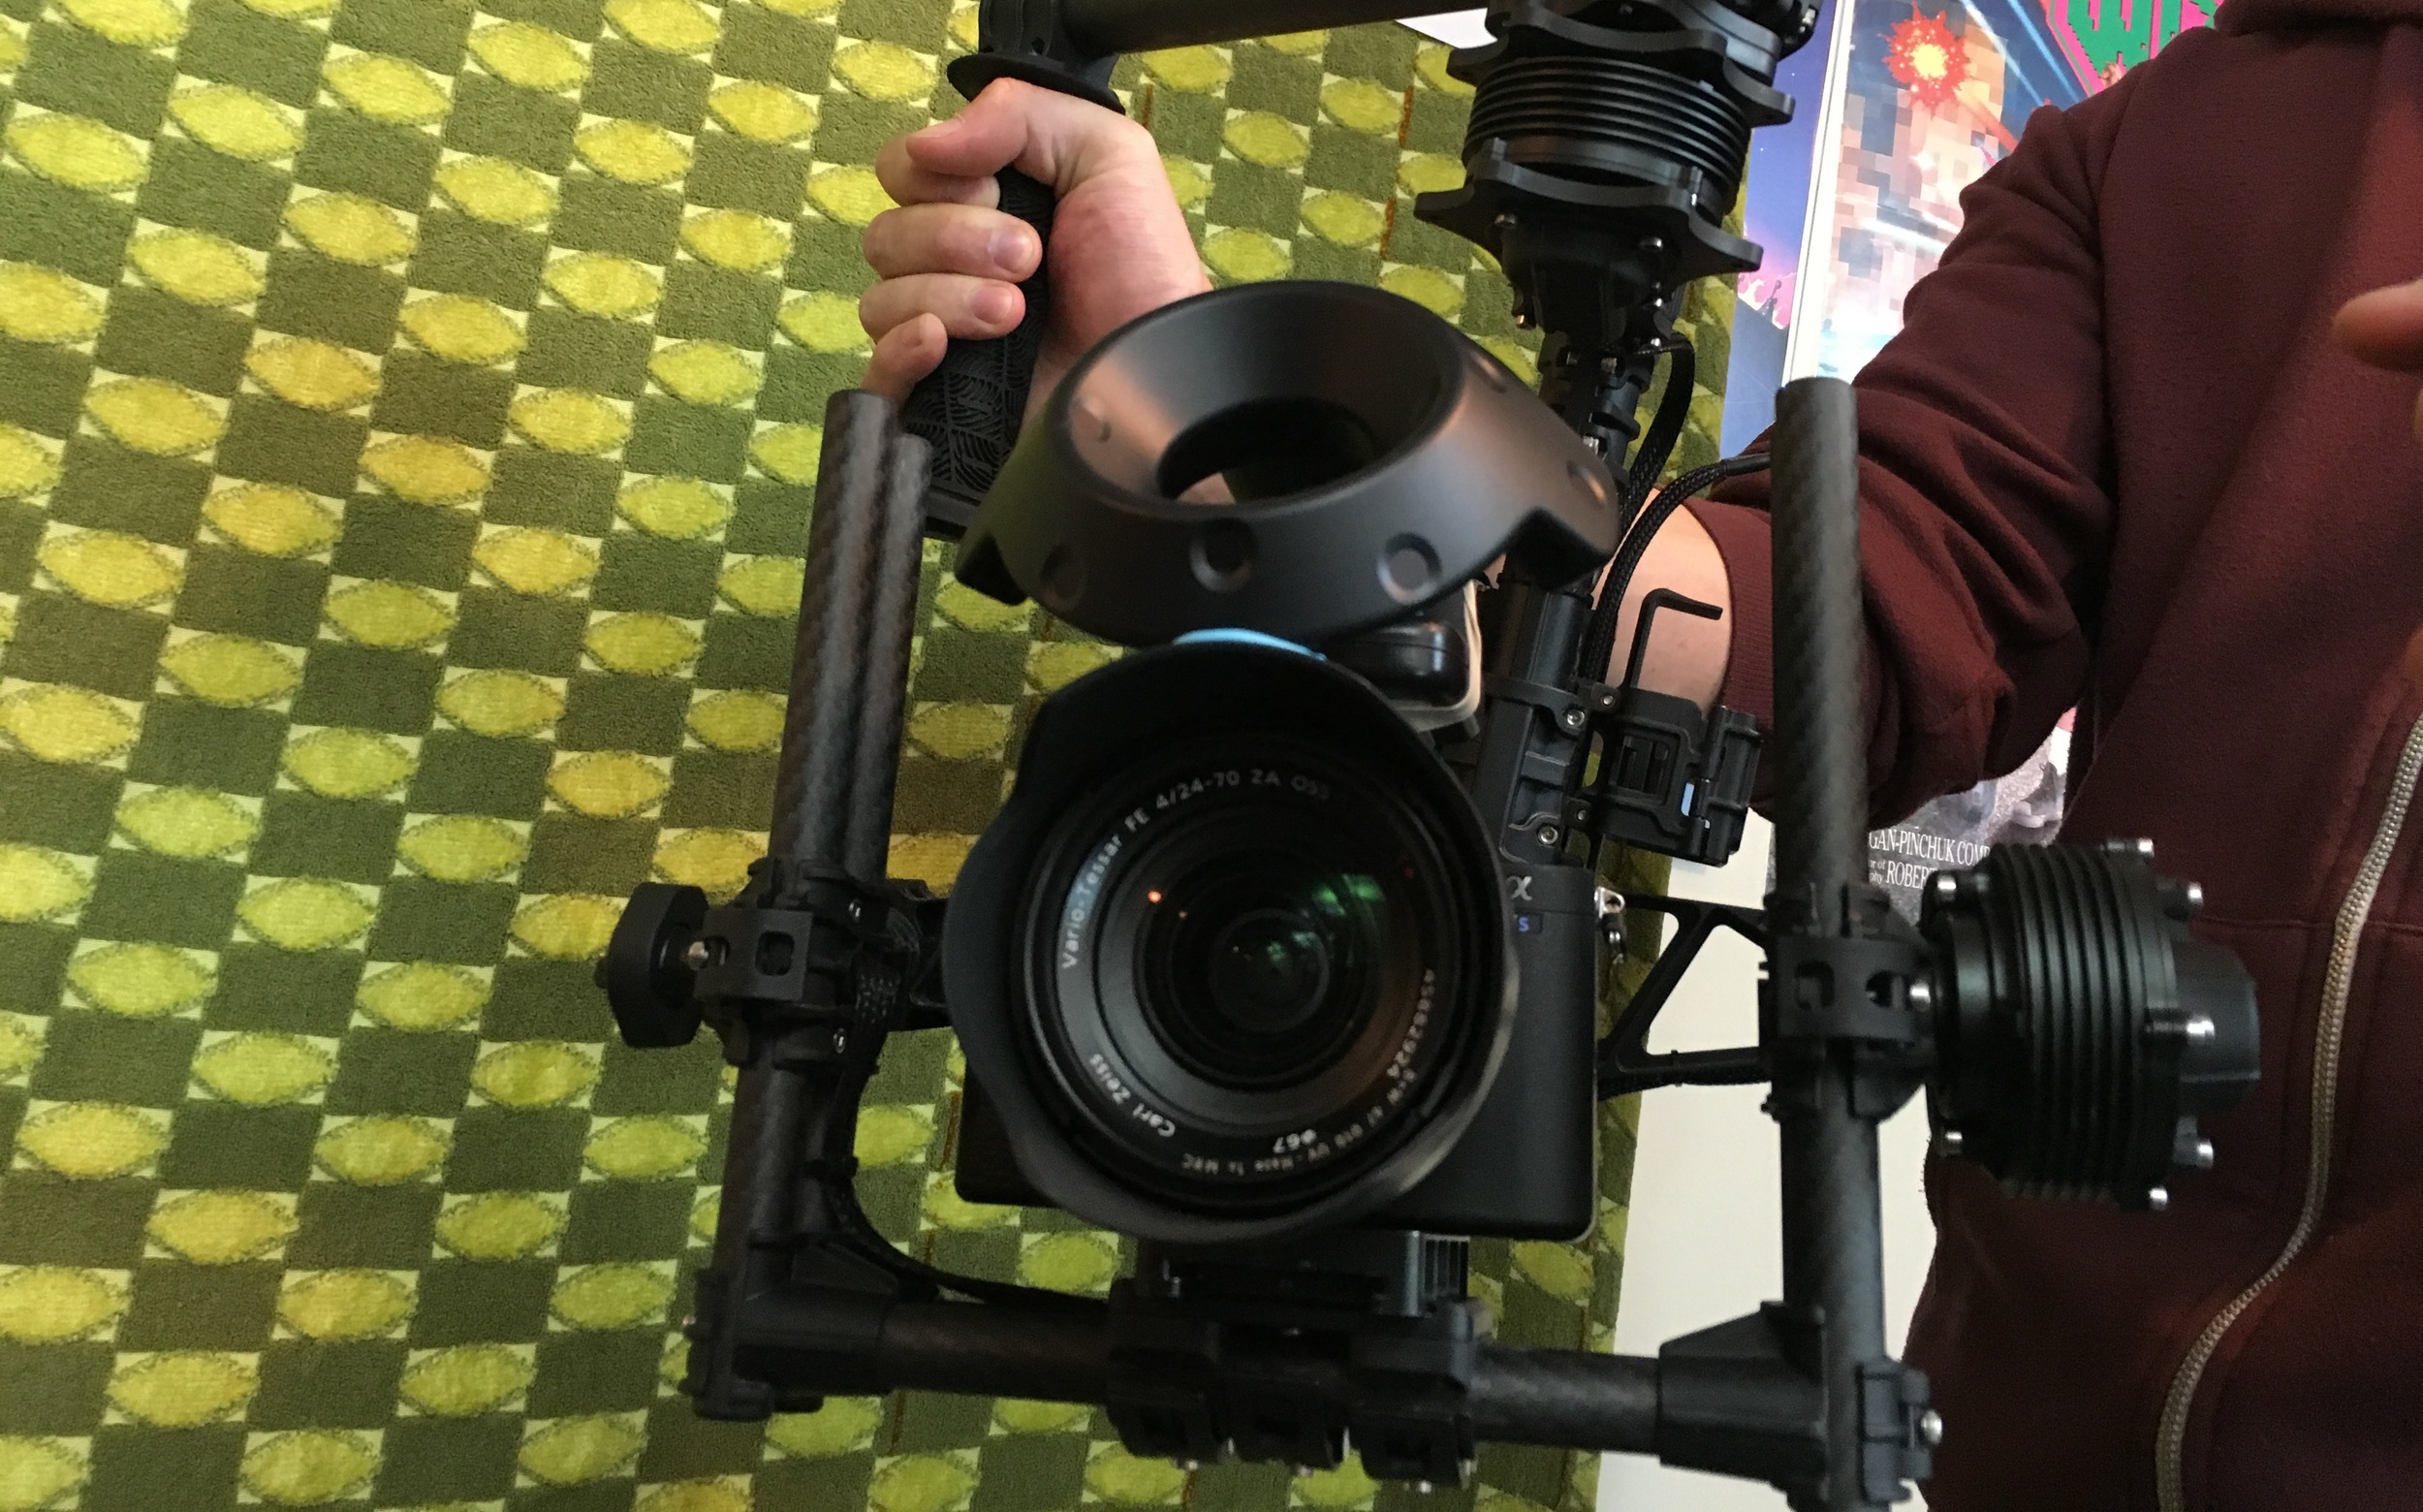 Our initial test mounting the a7S II to the Movi Steadycam with the third VIVE controller on top. In the end, we went with a more rigid solution for the final shoot.